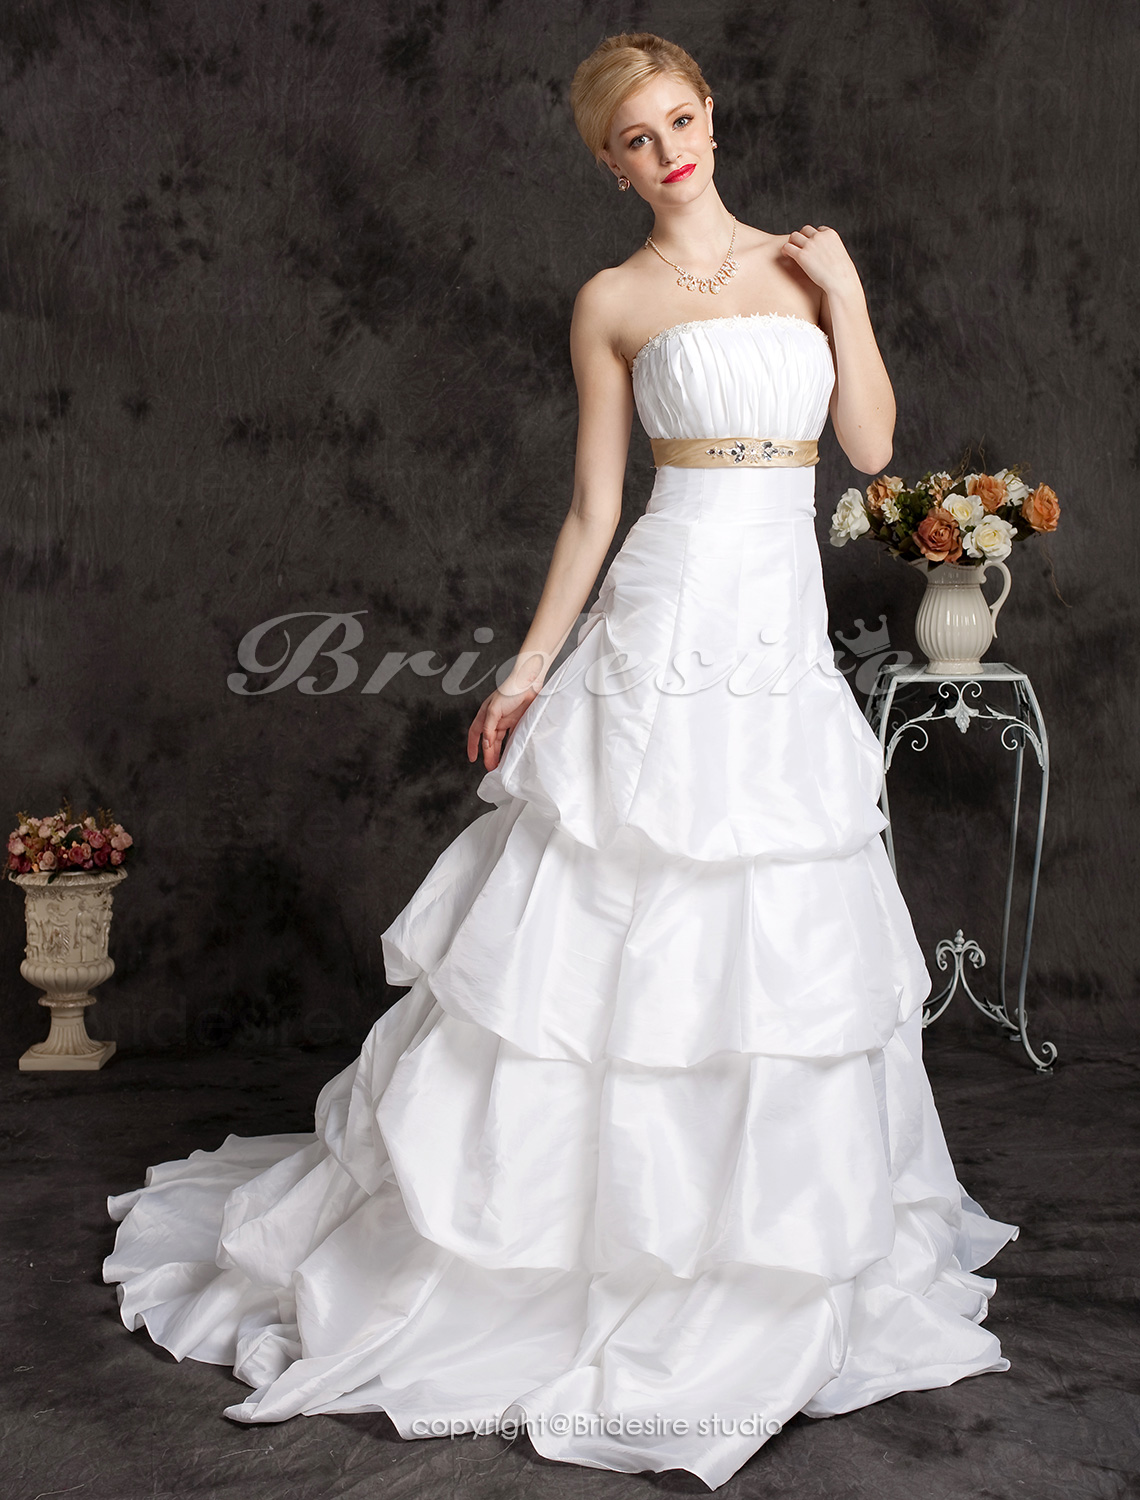 A-line Strapless Princess Court Train Taffeta Wedding Dress with Pick-ups and A Belt